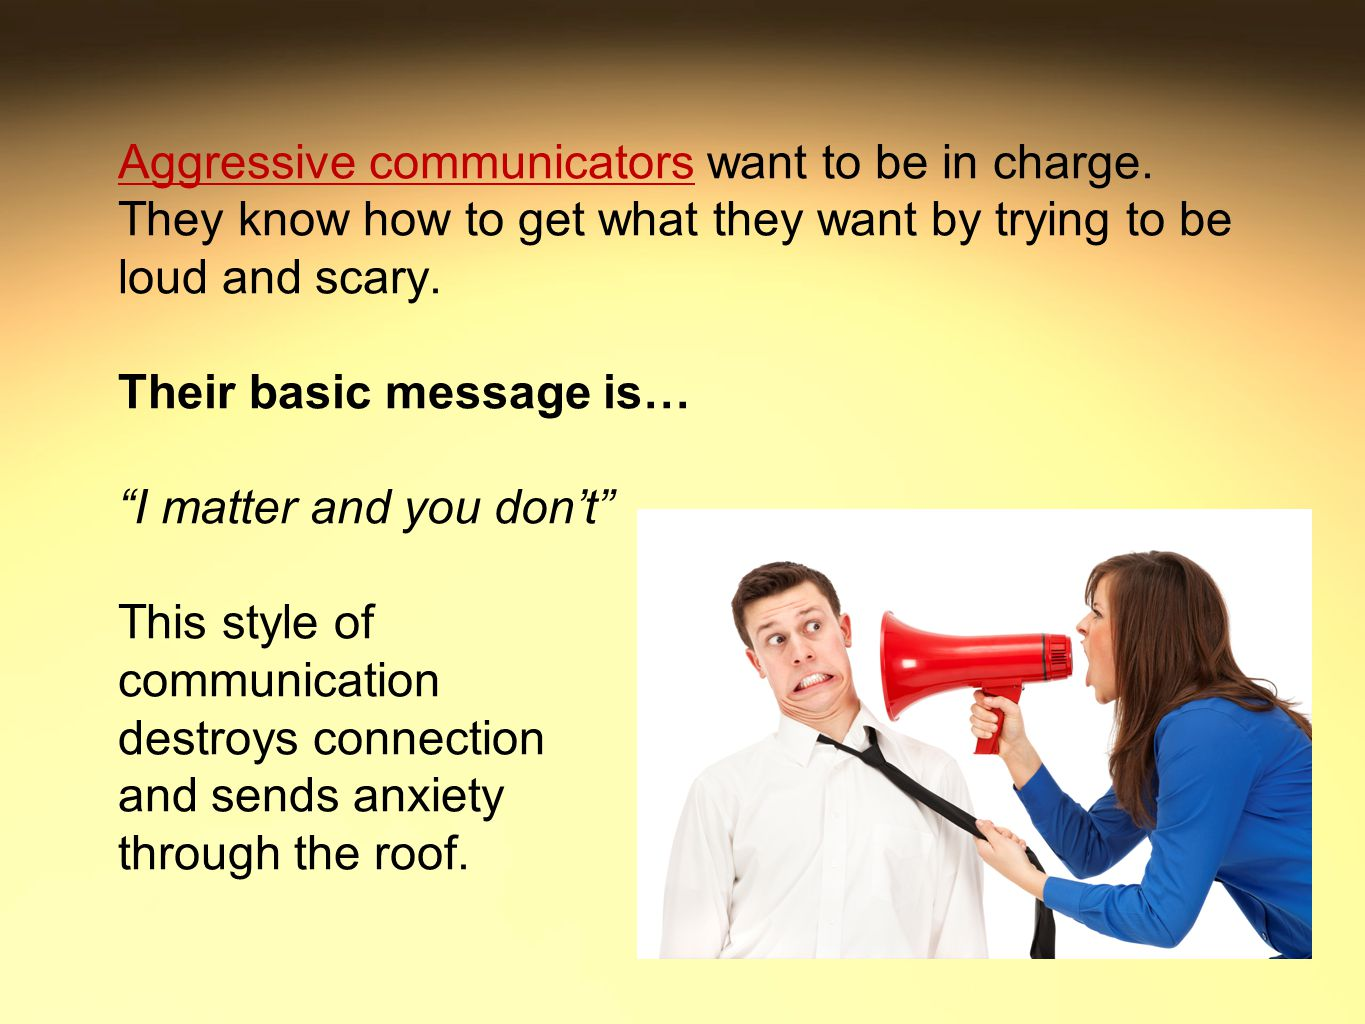 Aggressive communicators want to be in charge.